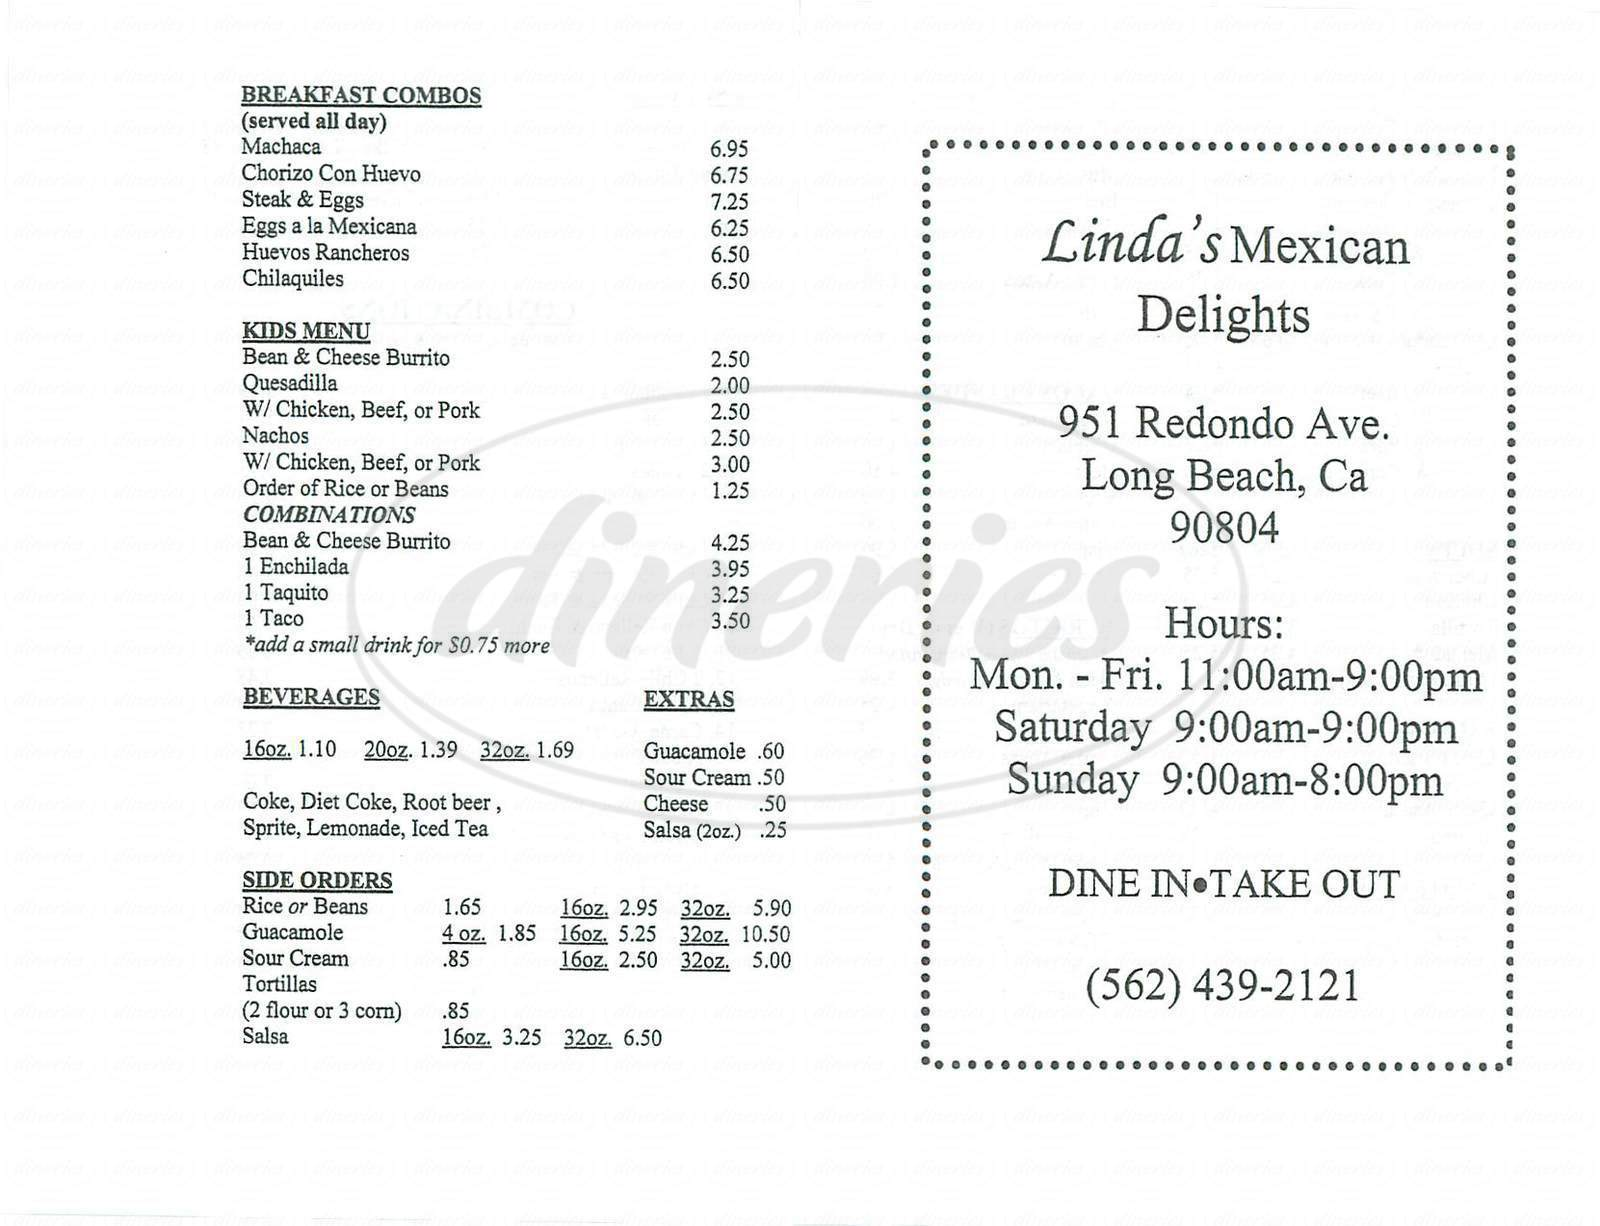 menu for Lindas Mexican Delight